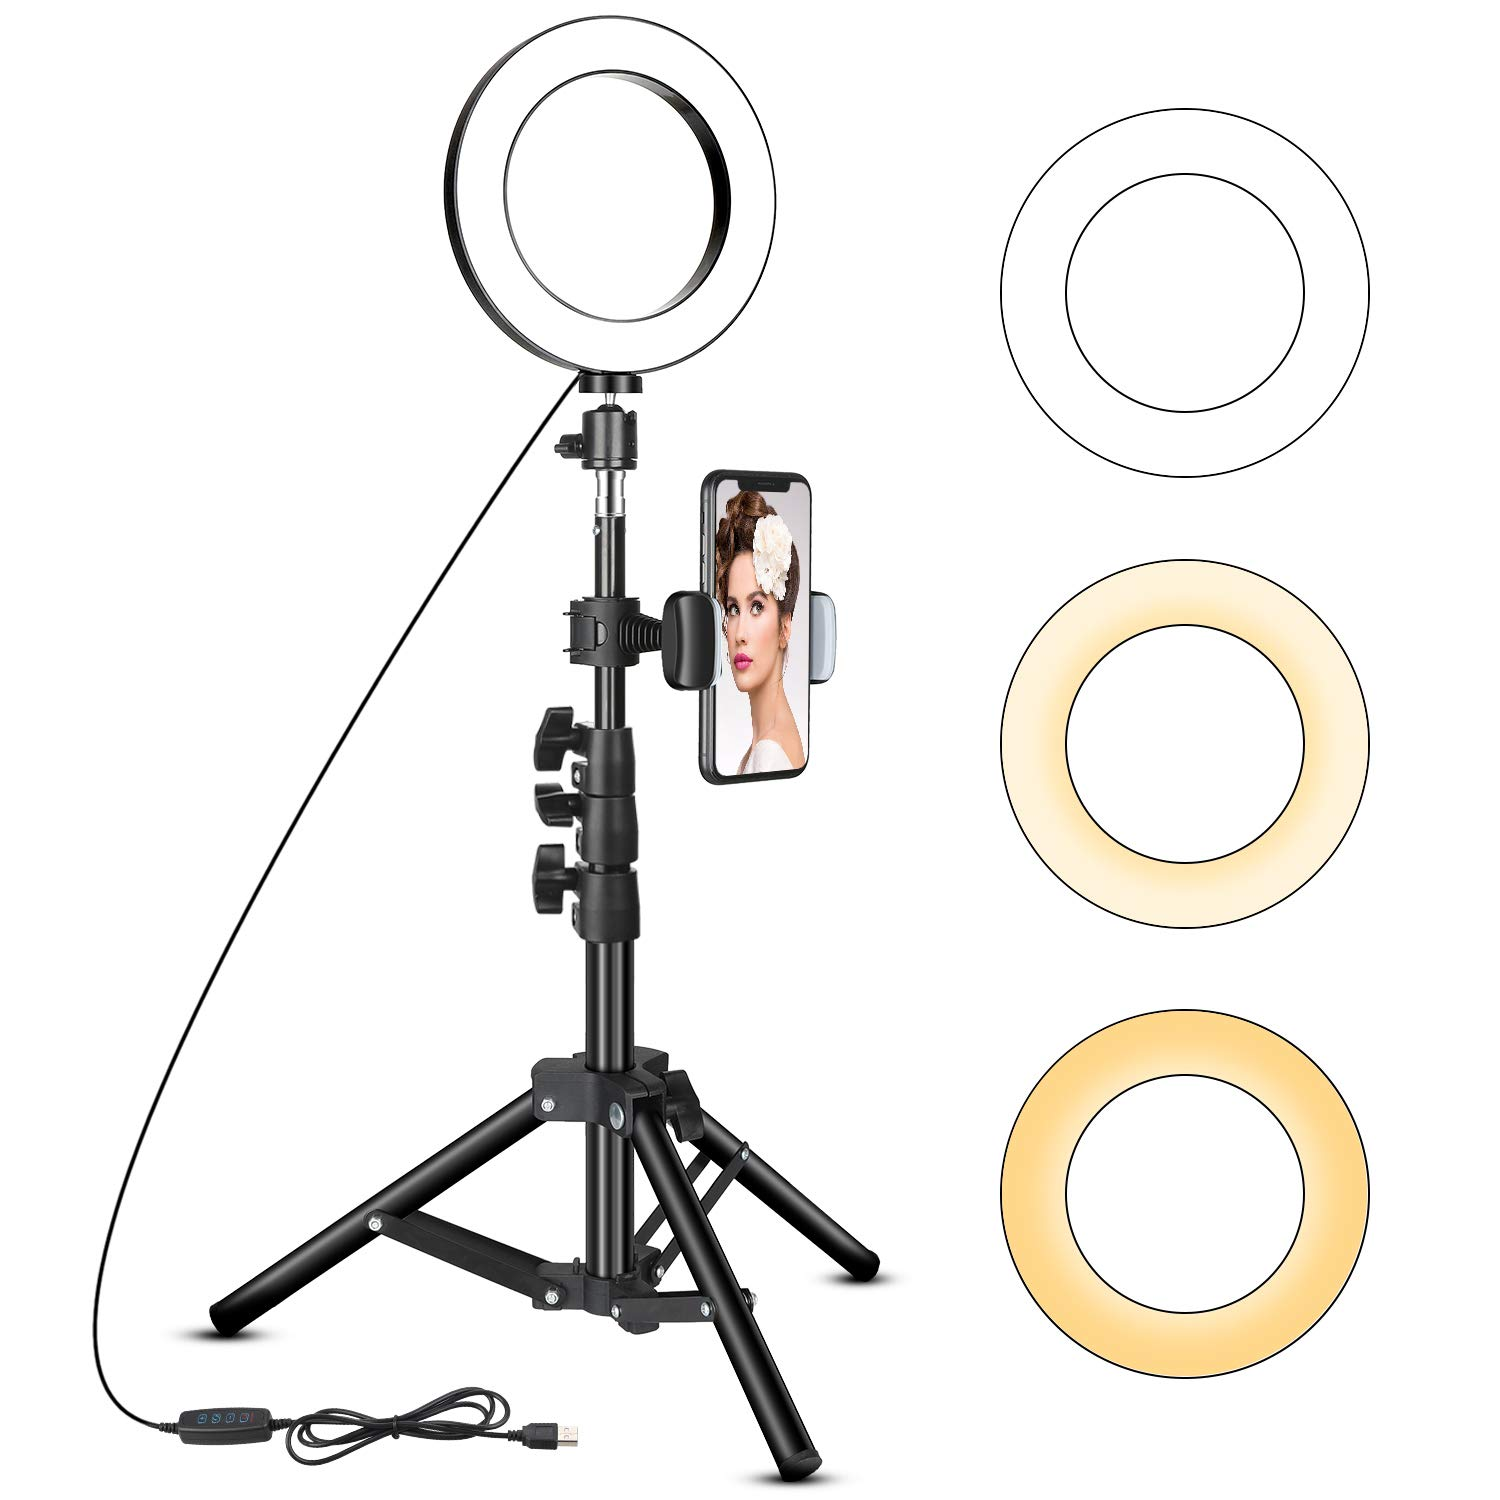 6 inch Ring Light with Tripod Stand - Rovtop LED Camera Selfie Light Ring with iPhone Tripod and Phone Holder for Video Photography Makeup Live Streaming, Compatible with iPhone and Android Phone